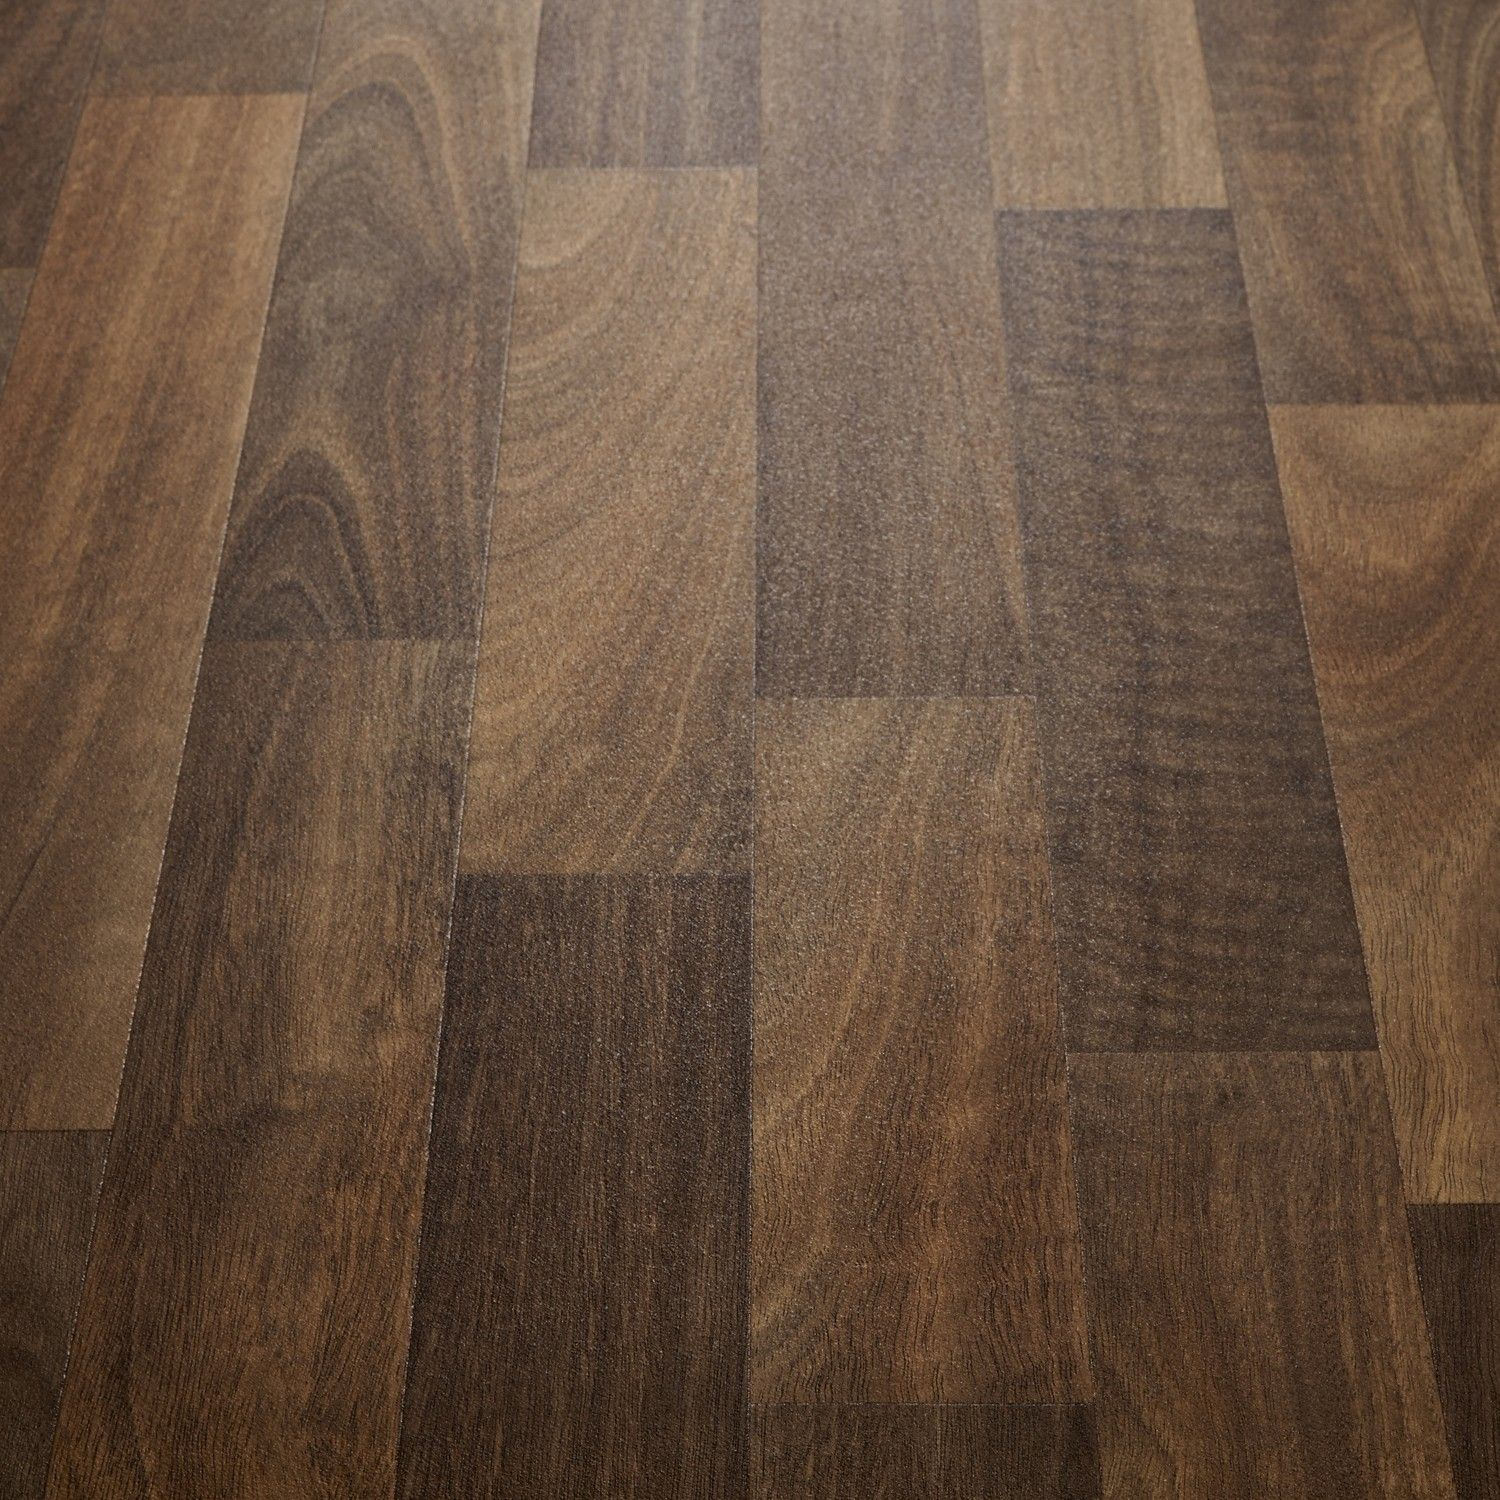 Touch of class 547 spotted gum wood effect vinyl flooring touch of class 547 spotted gum wood effect vinyl flooring dailygadgetfo Image collections